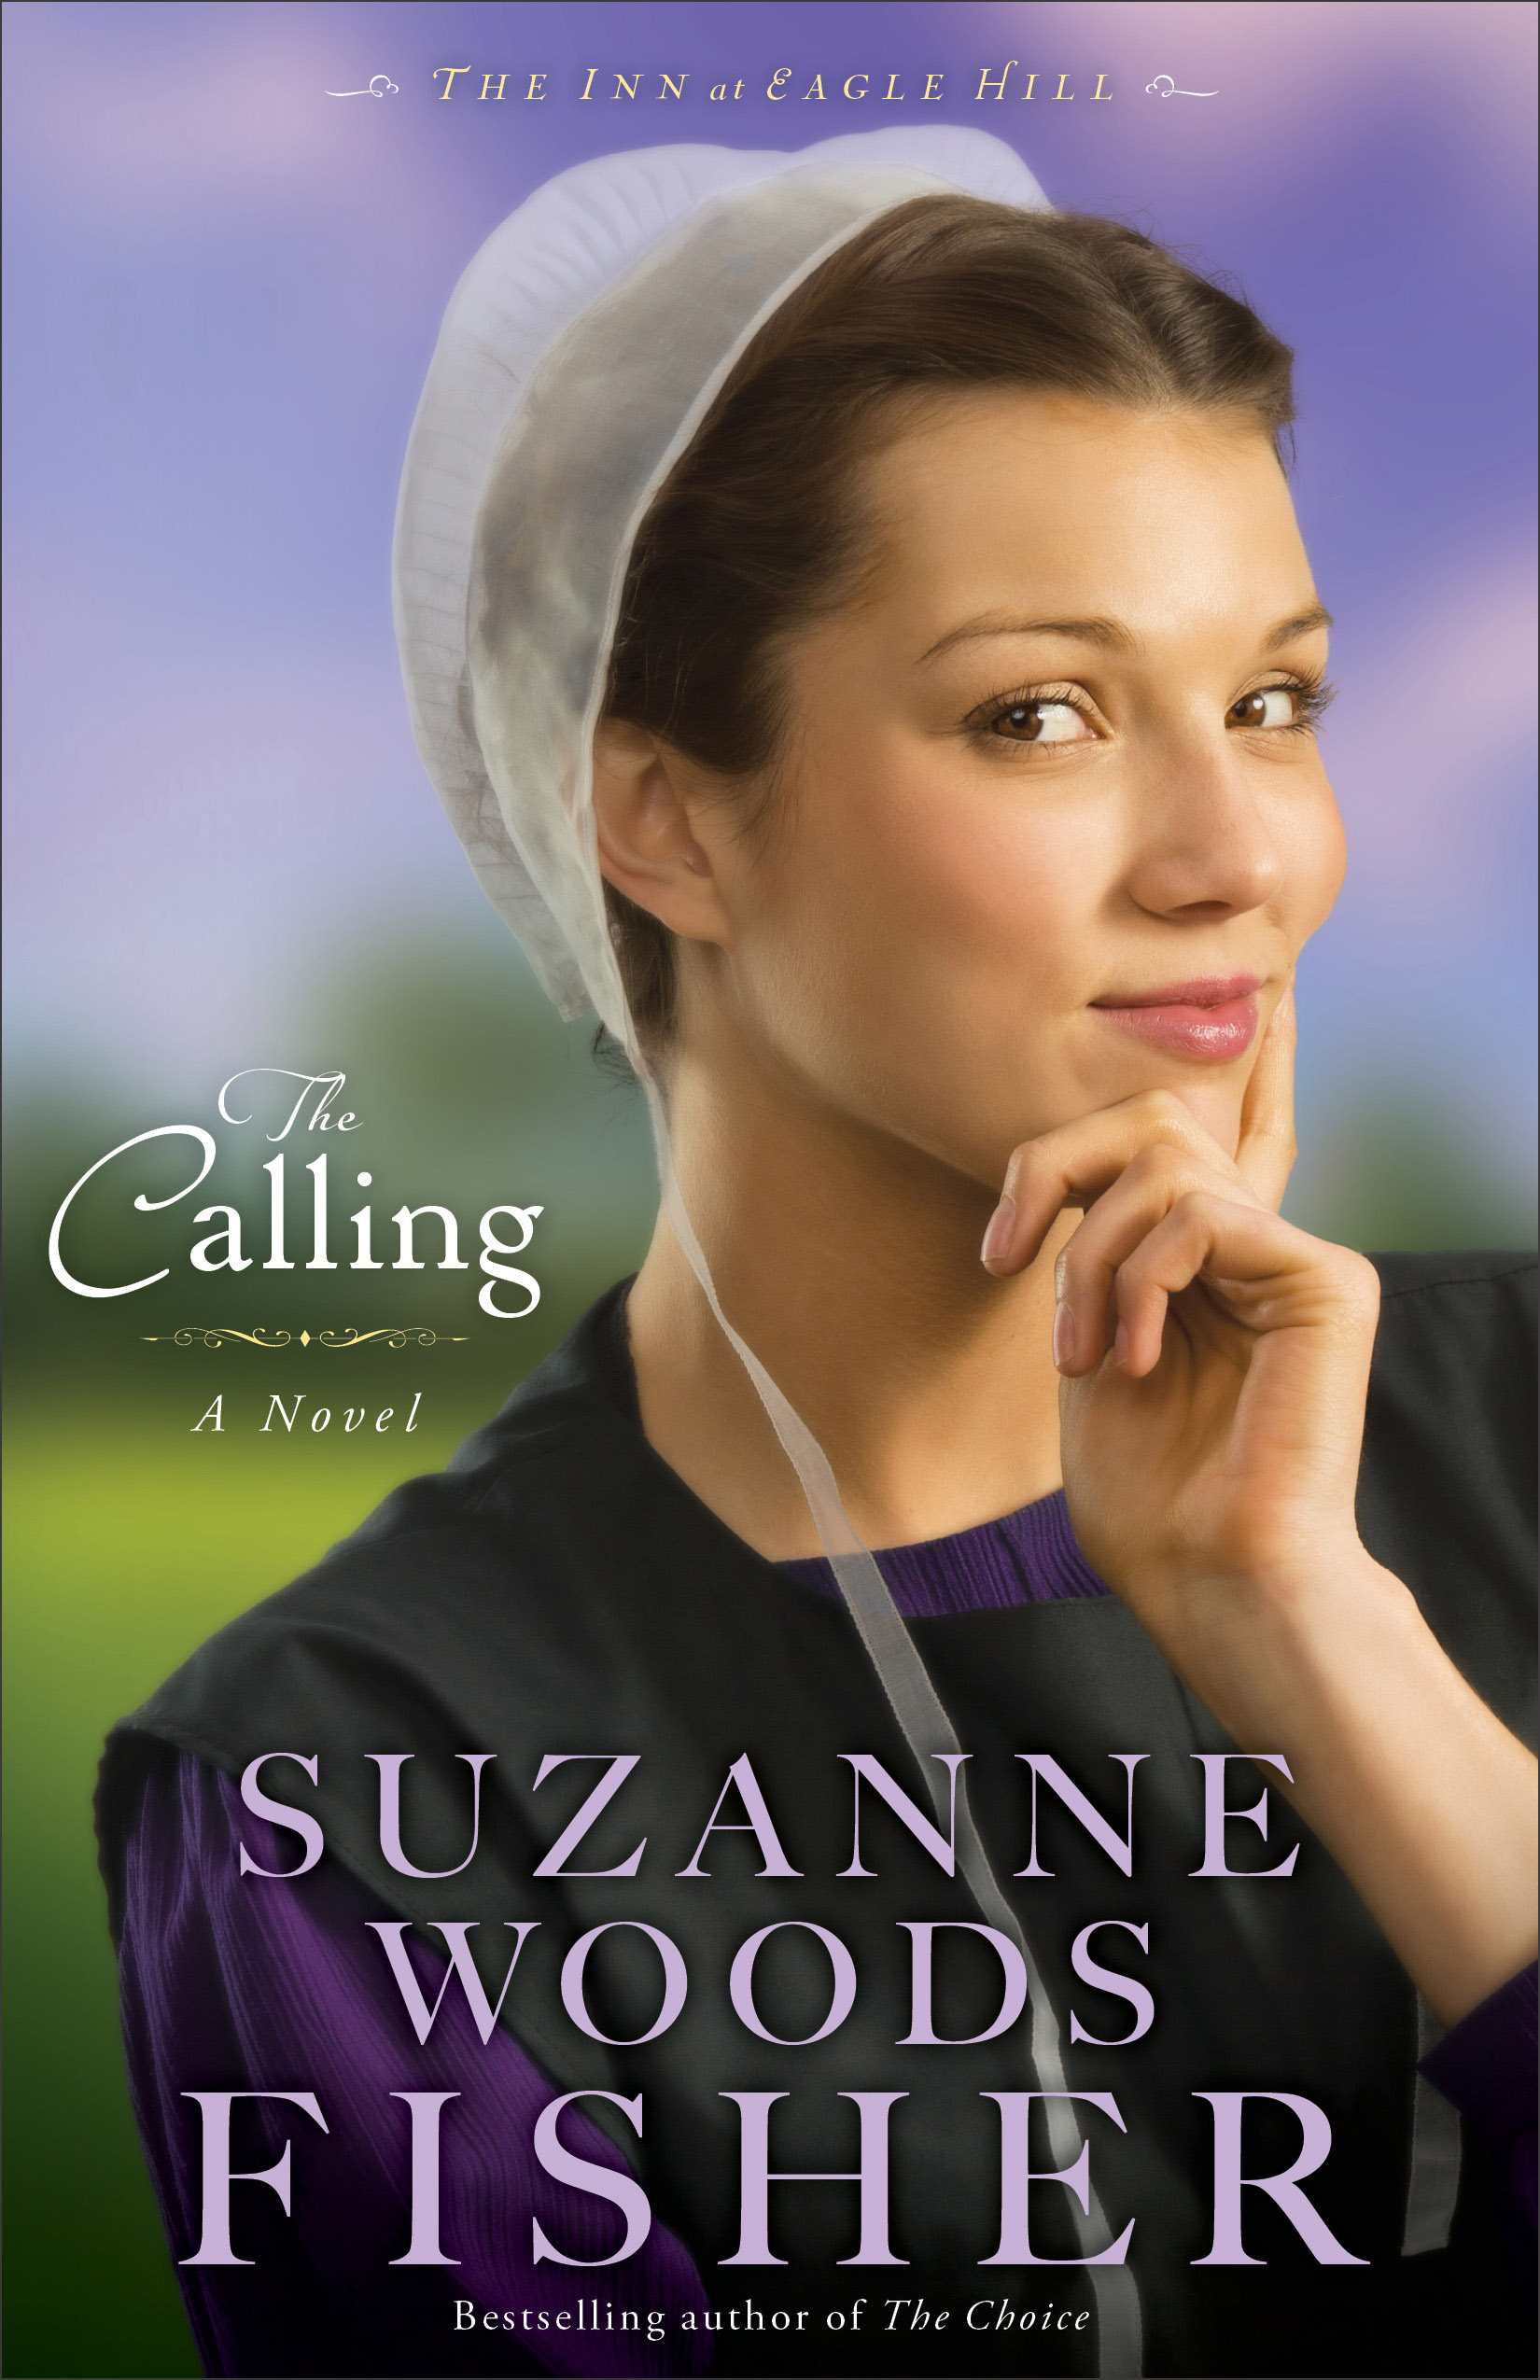 The Calling Suzanne Woods Fisher